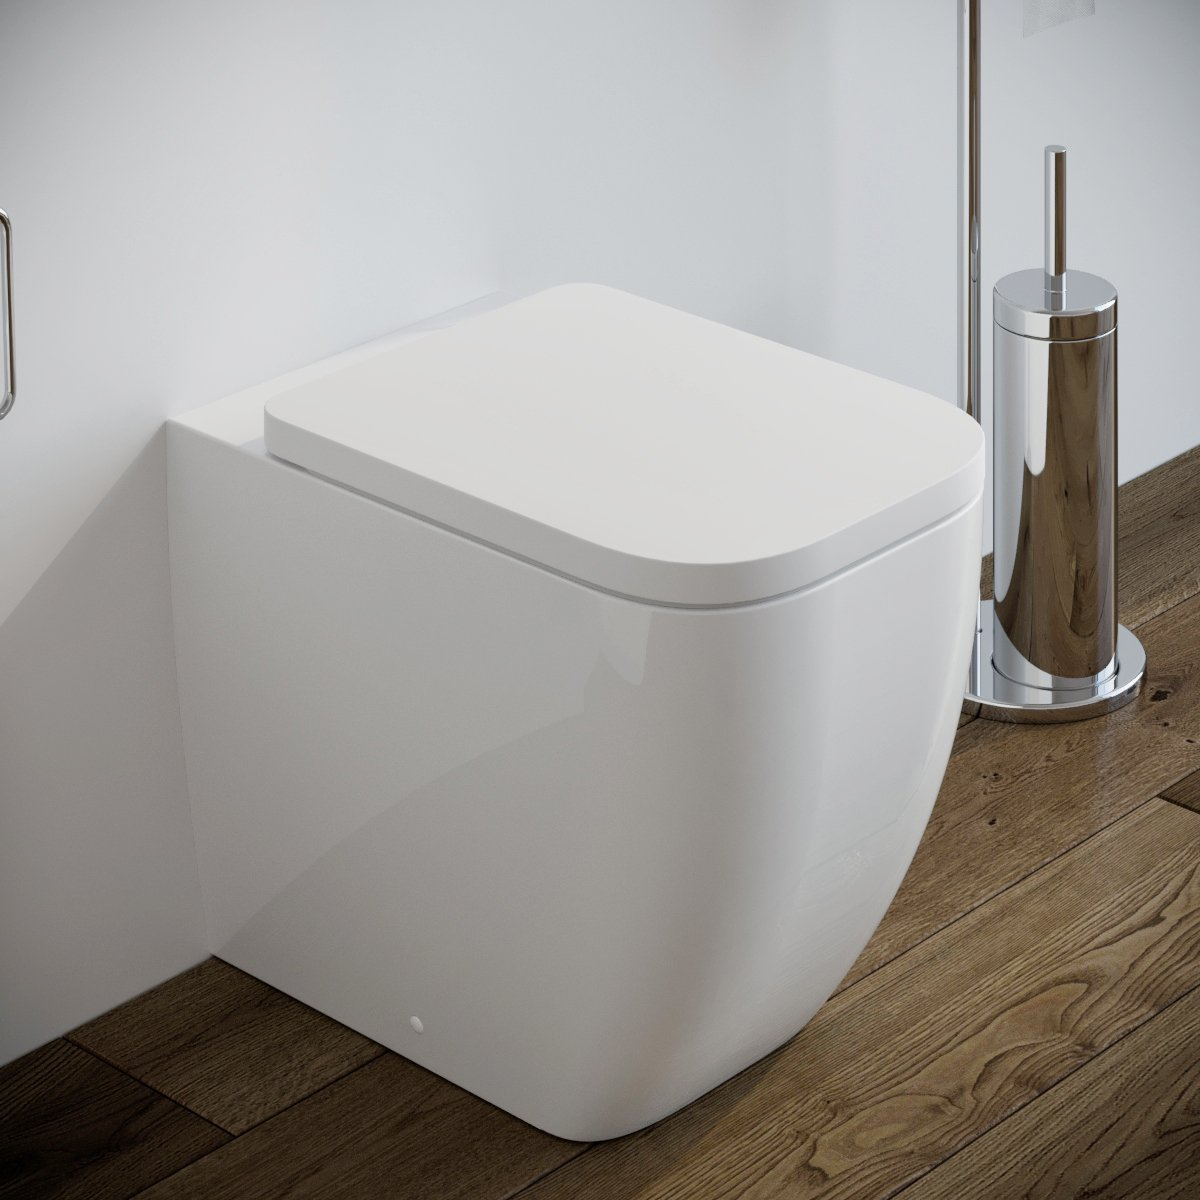 Vaso Wc Legend Filo Muro In Ceramica Completo Di Sedile Softclose